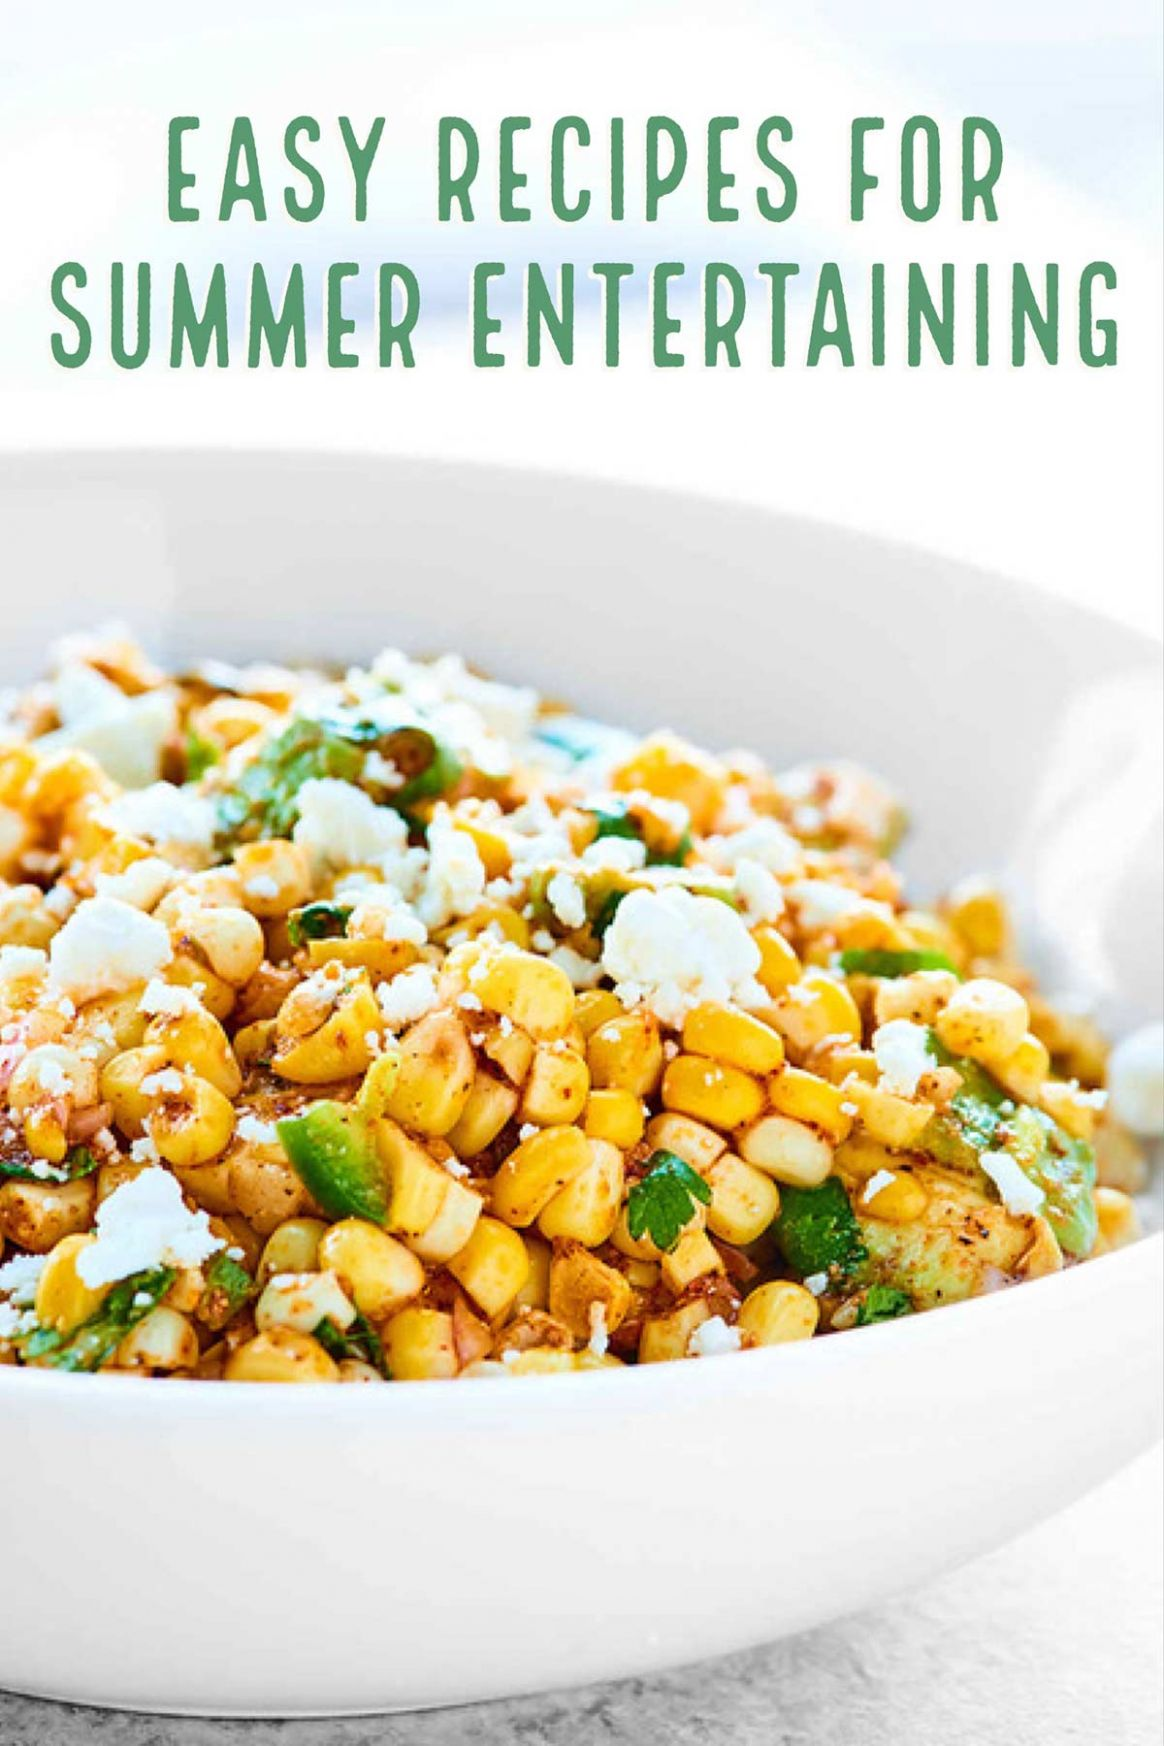 Easy Recipes for Summer Entertaining - Show Me the Yummy - Easy Recipes Entertaining